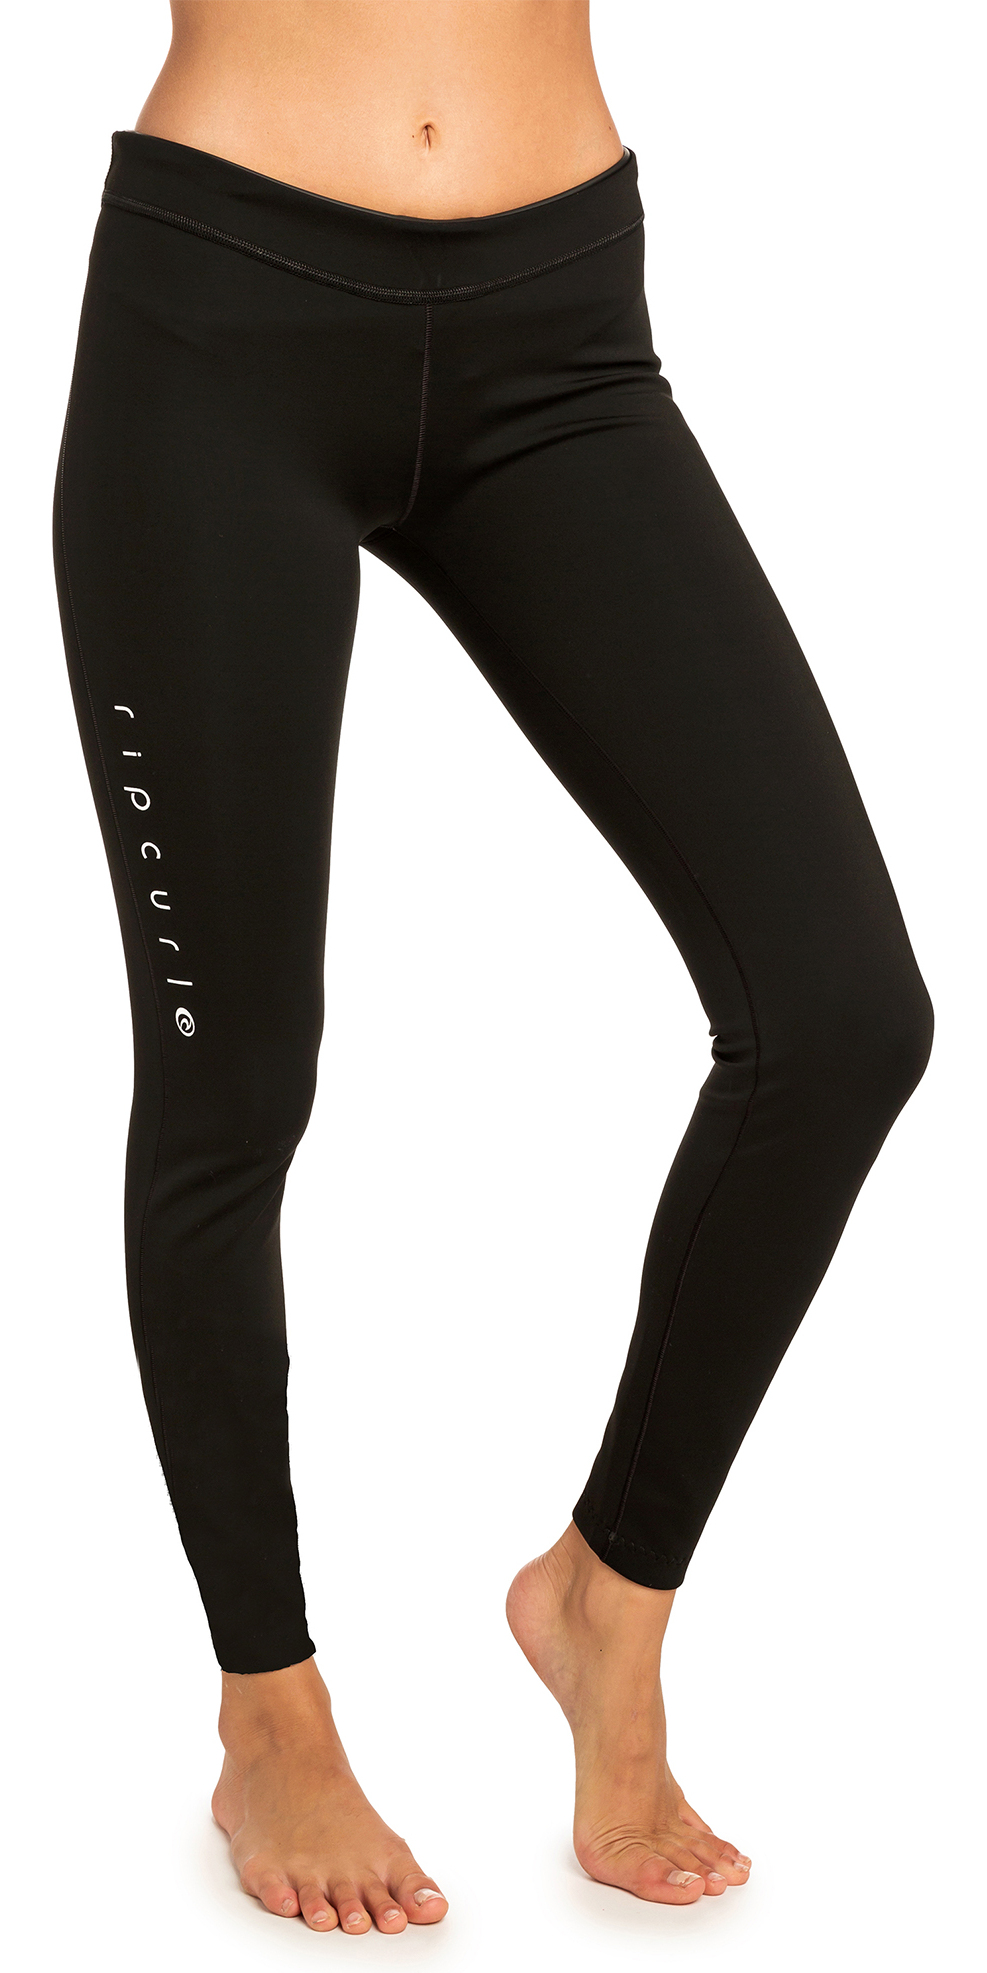 2019 Rip Curl Womens G-Bomb 1mm SUP Neoprene Trousers Black WPA5AW